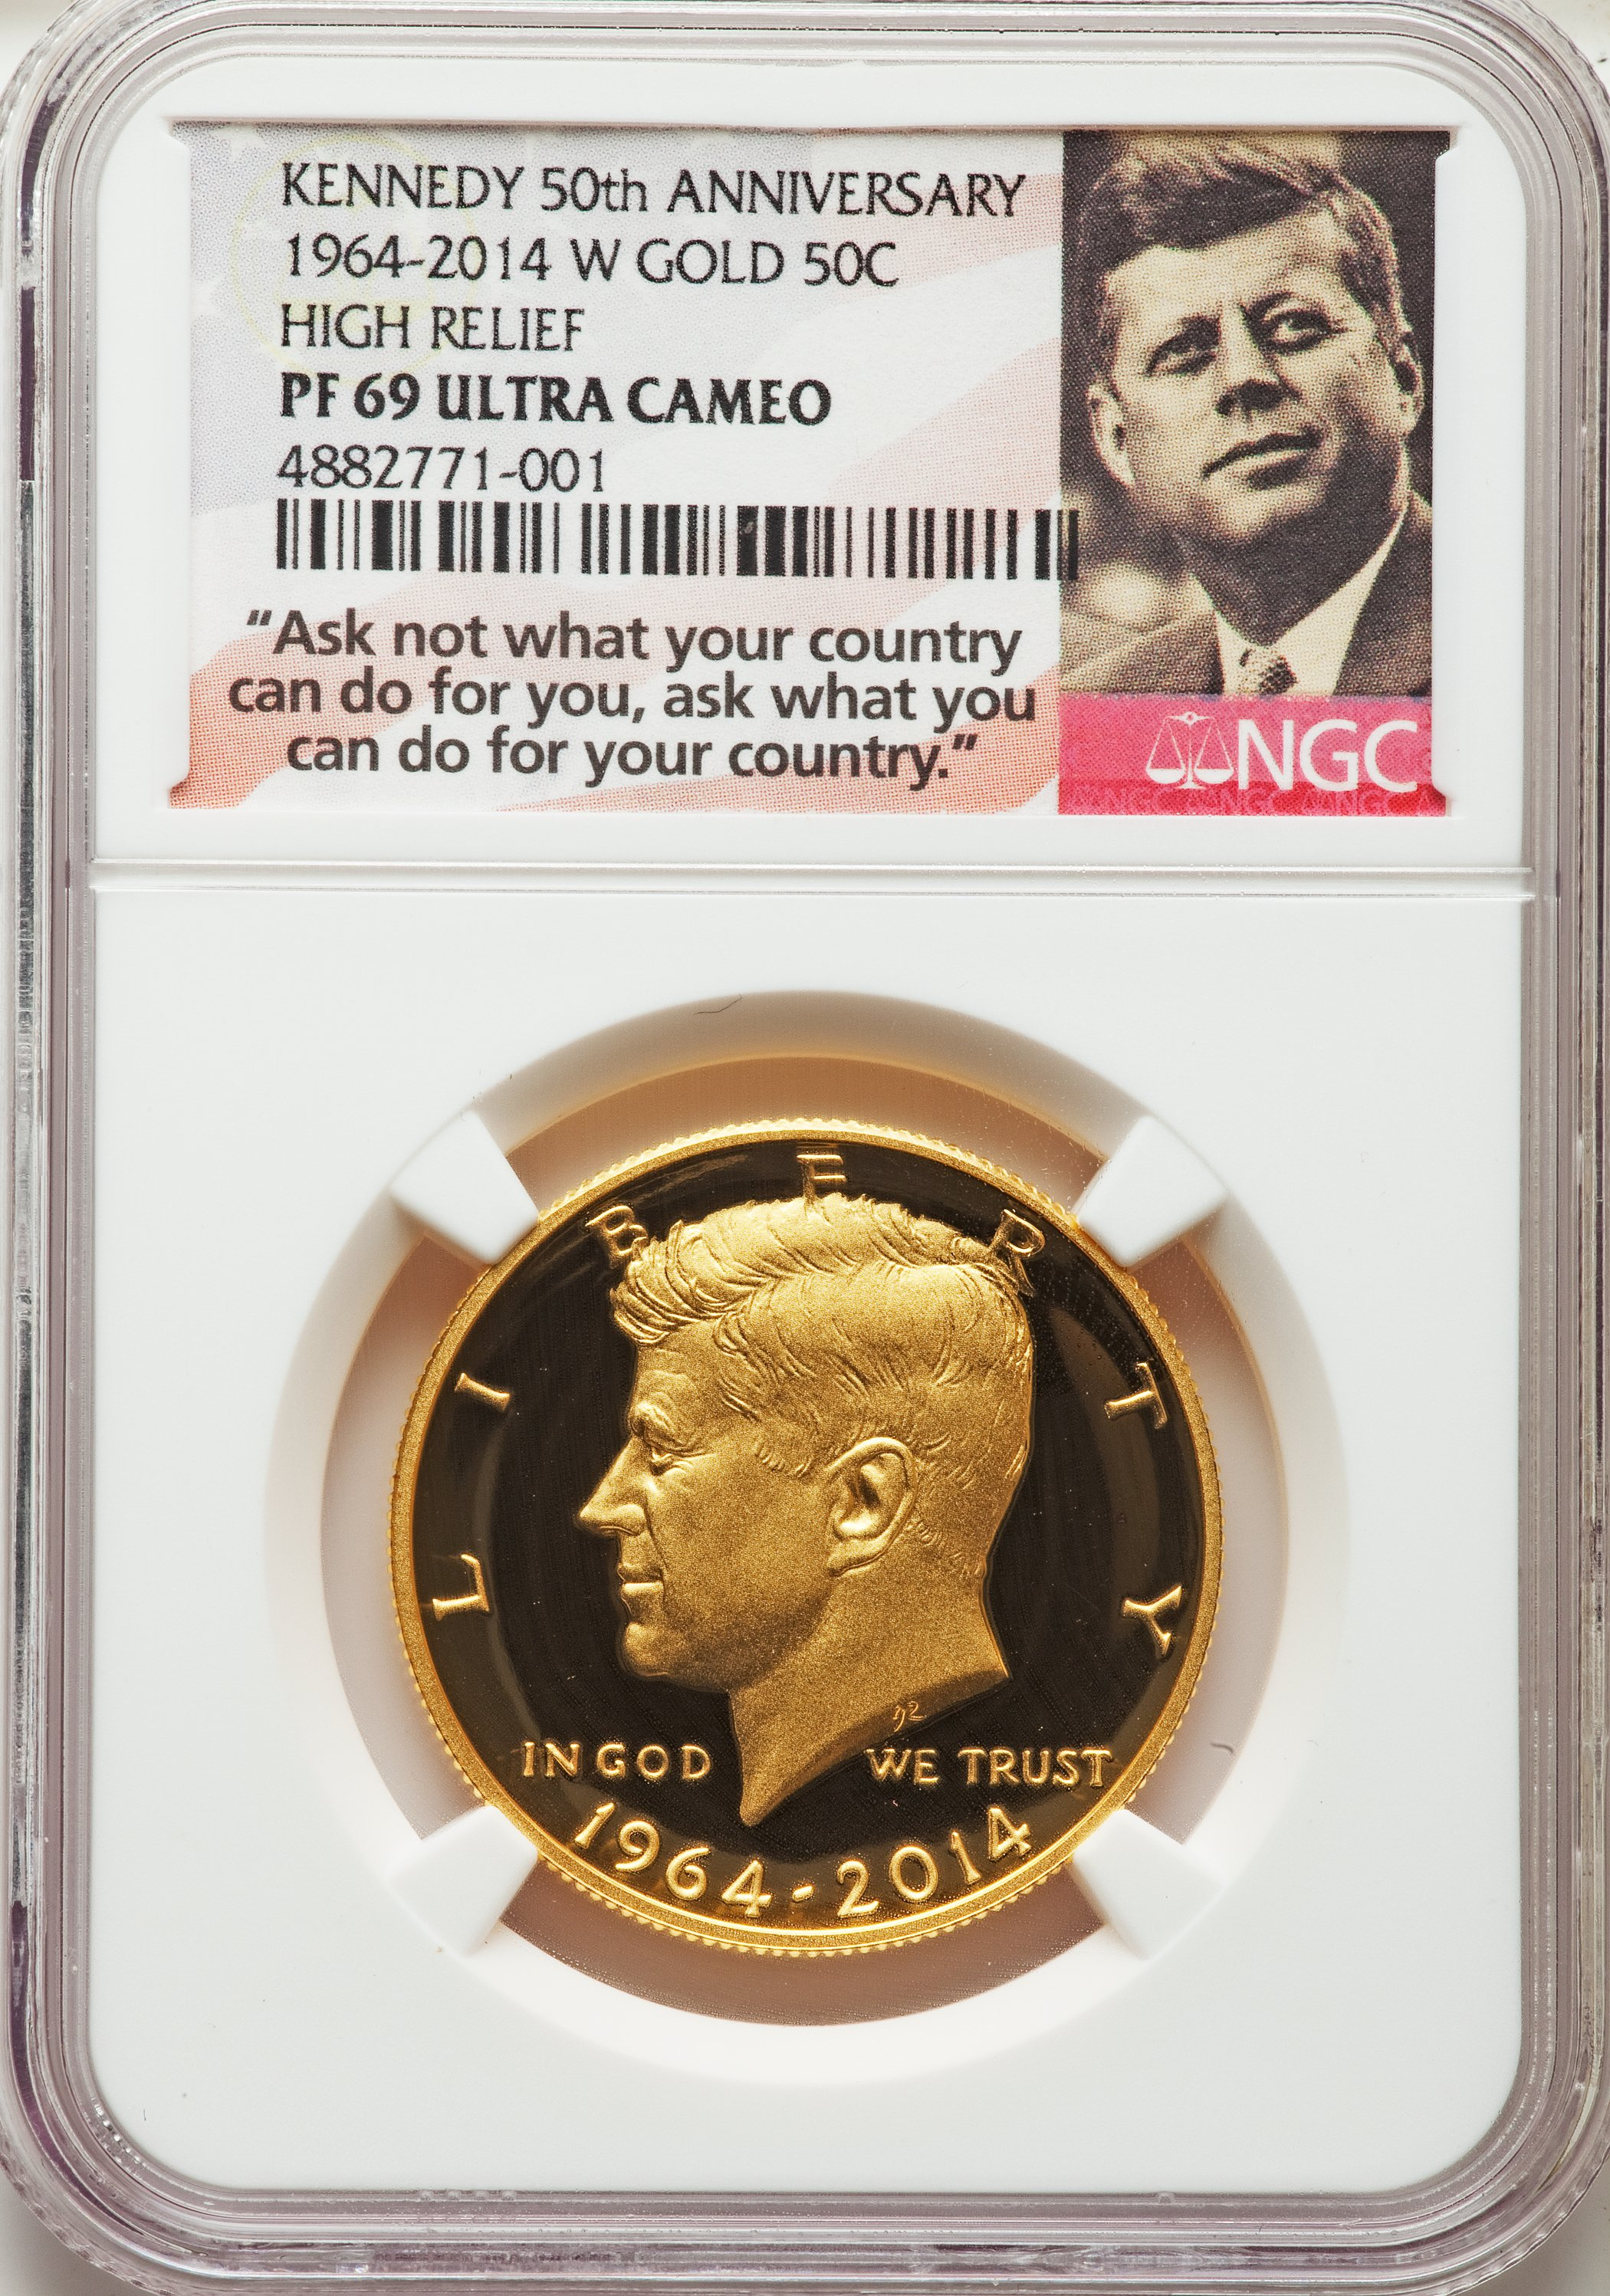 2015 s silver Kennedy half dollar NGC PF 69 Ultra Cameo